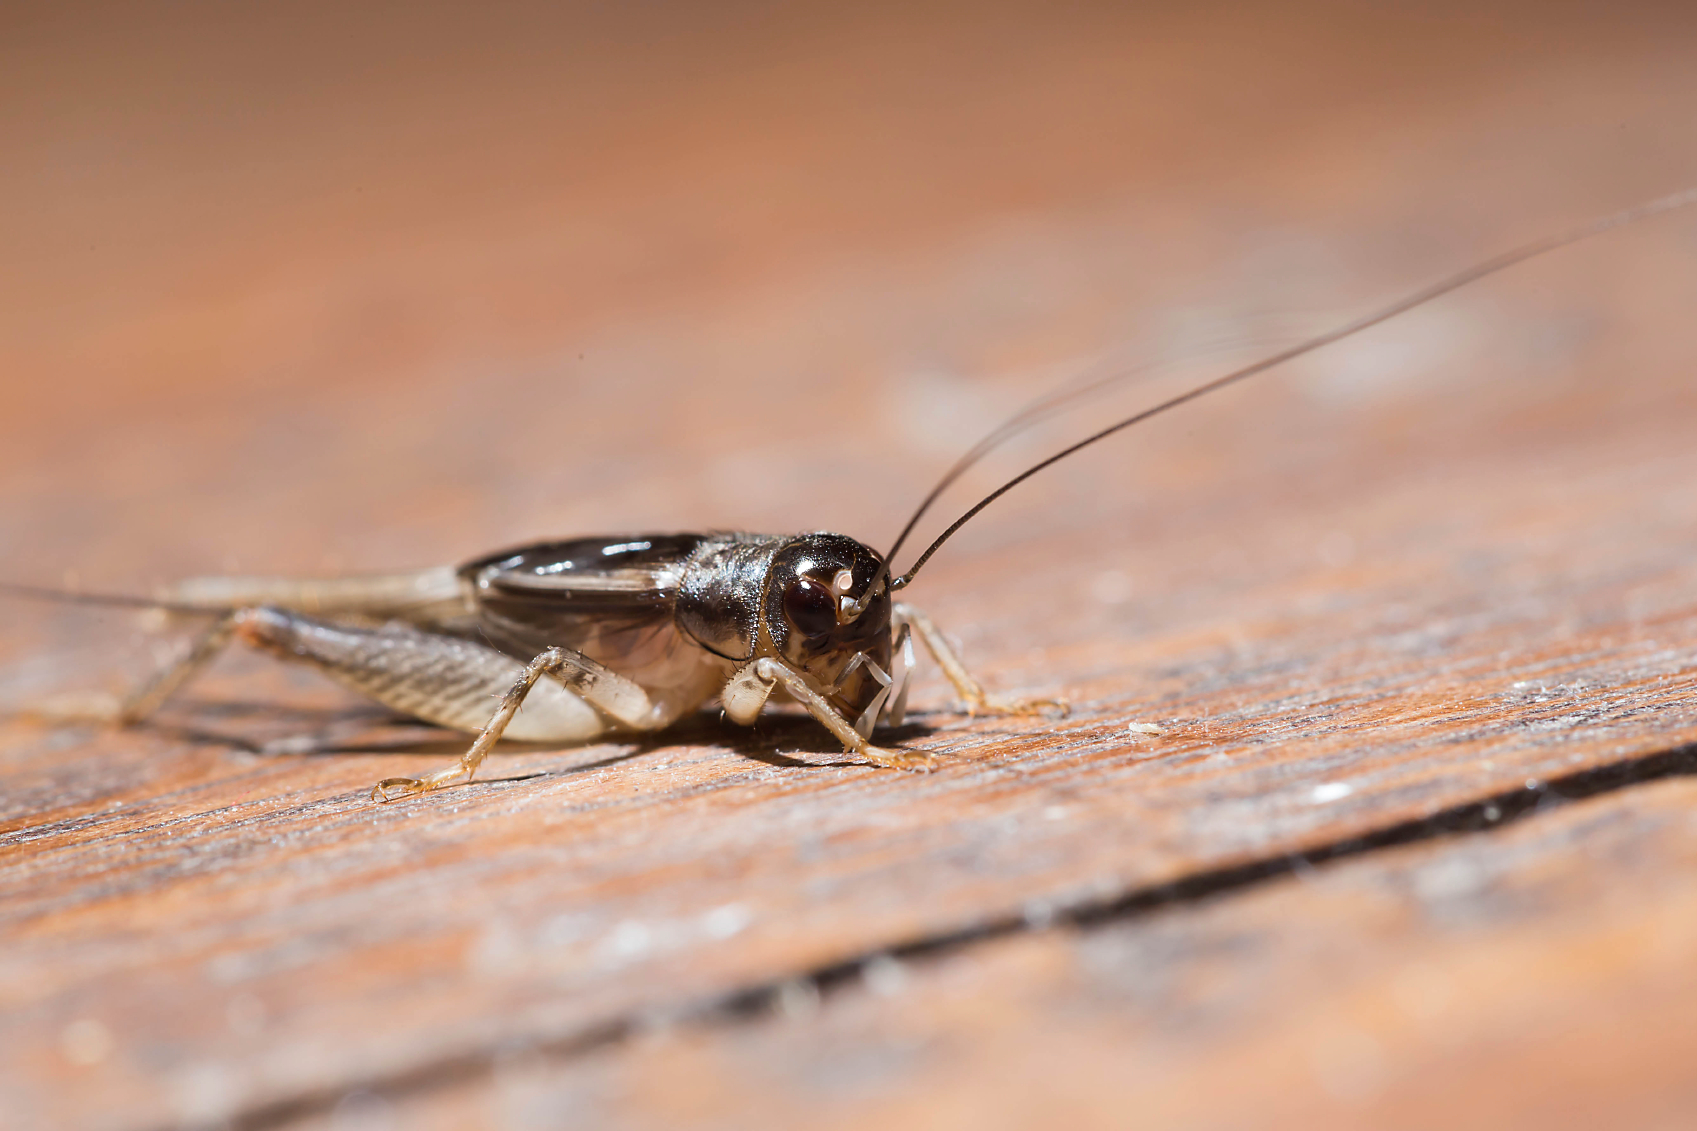 cricket on a wood floor